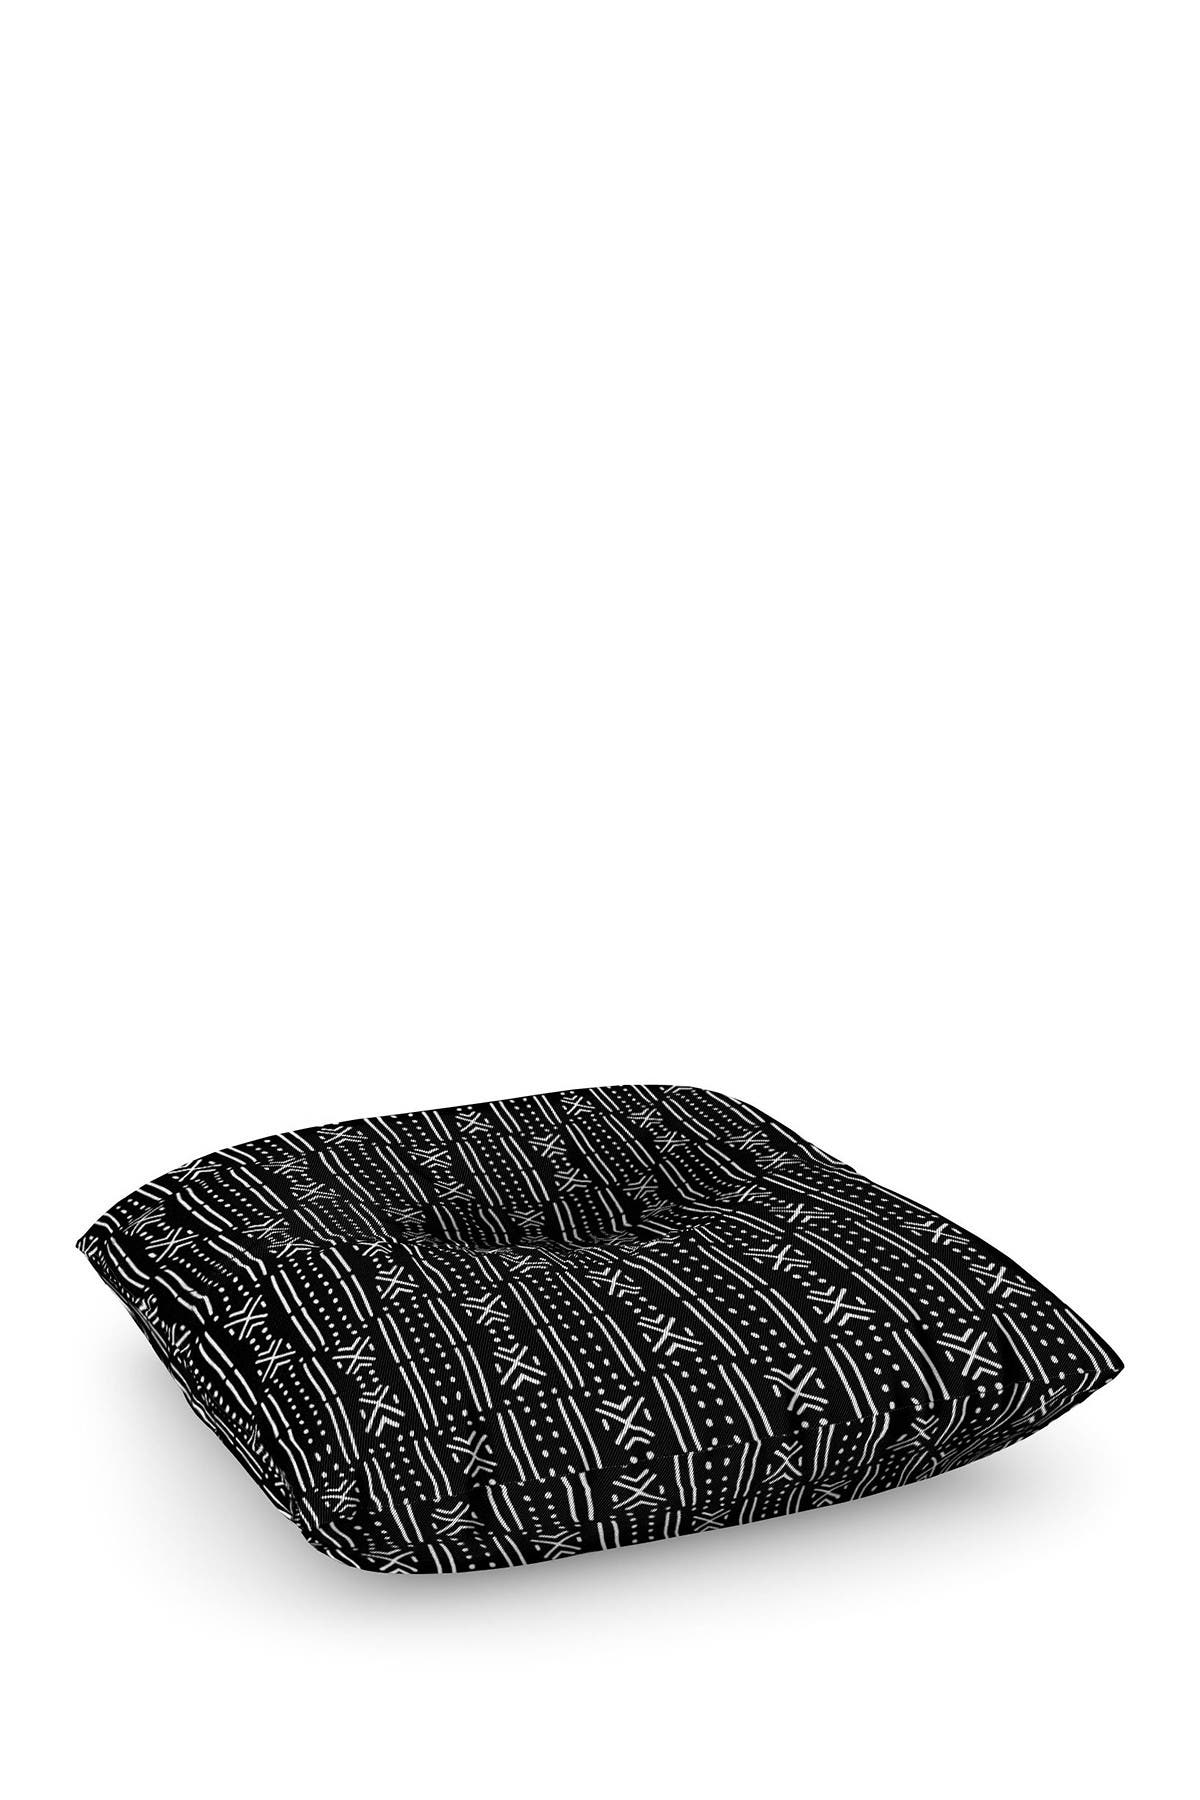 Image of Deny Designs Holli Zollinger Mudcloth Black Square Floor Pillow